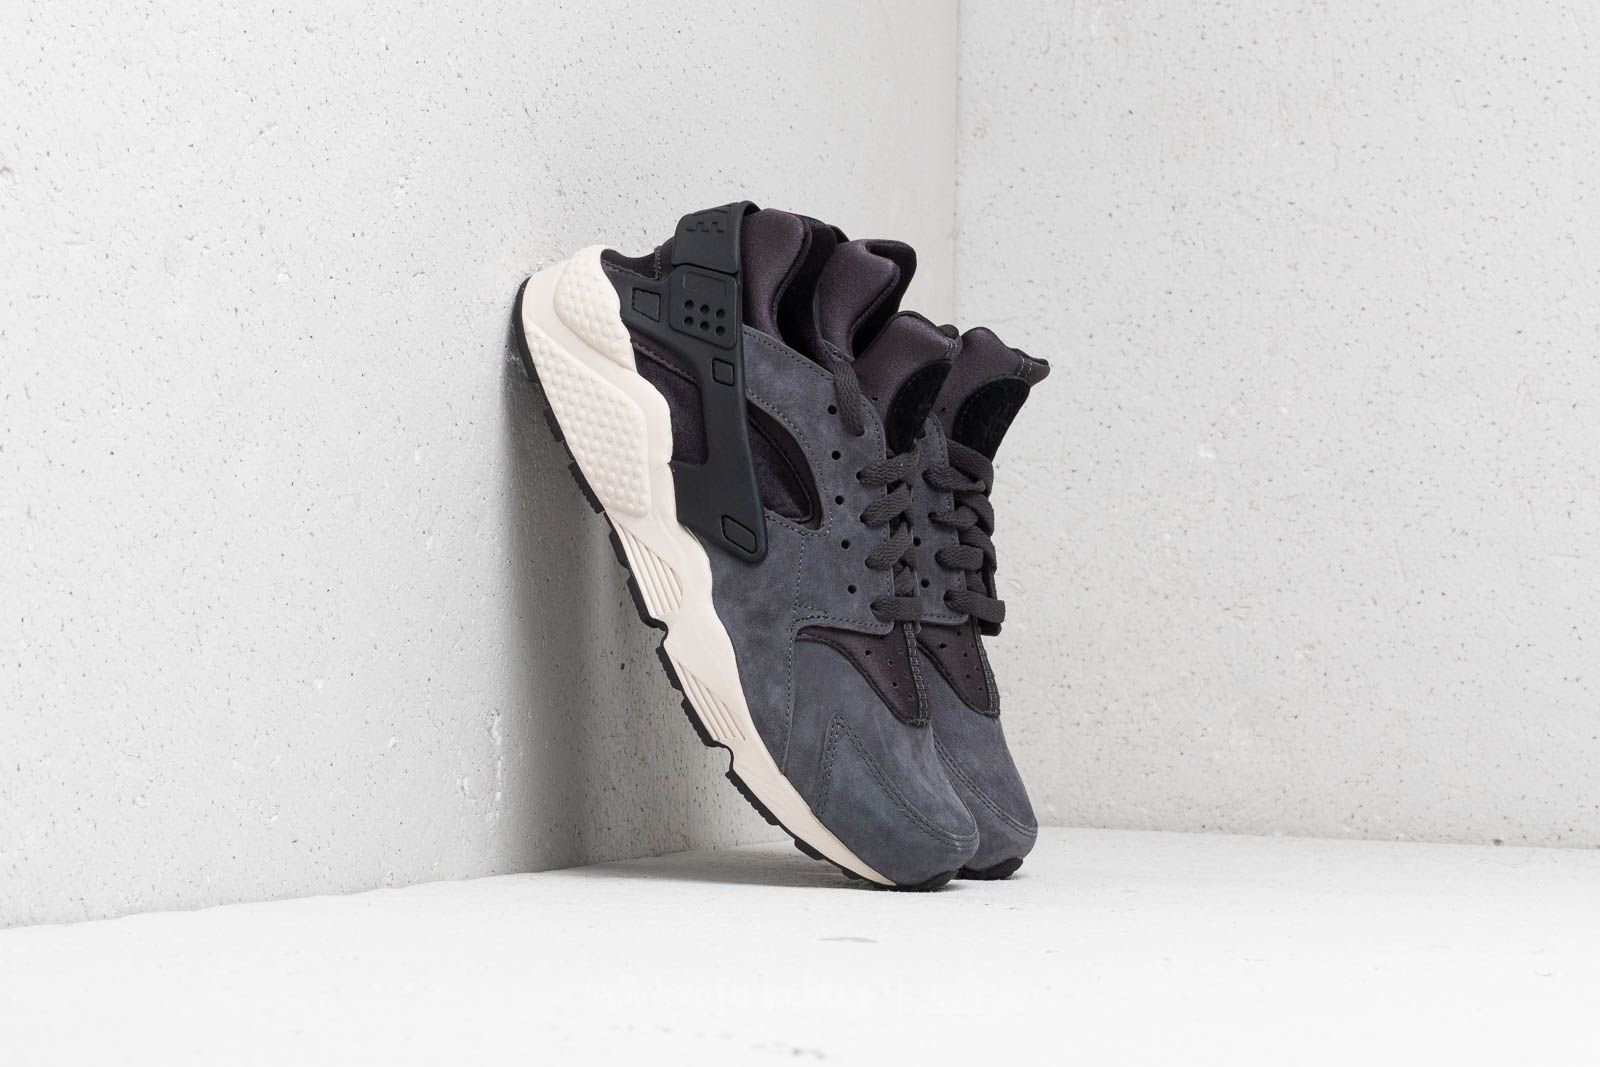 2403a182e0a0 Nike Air Huarache Run Premium Anthracite  Black-Light Bone at a great price  125